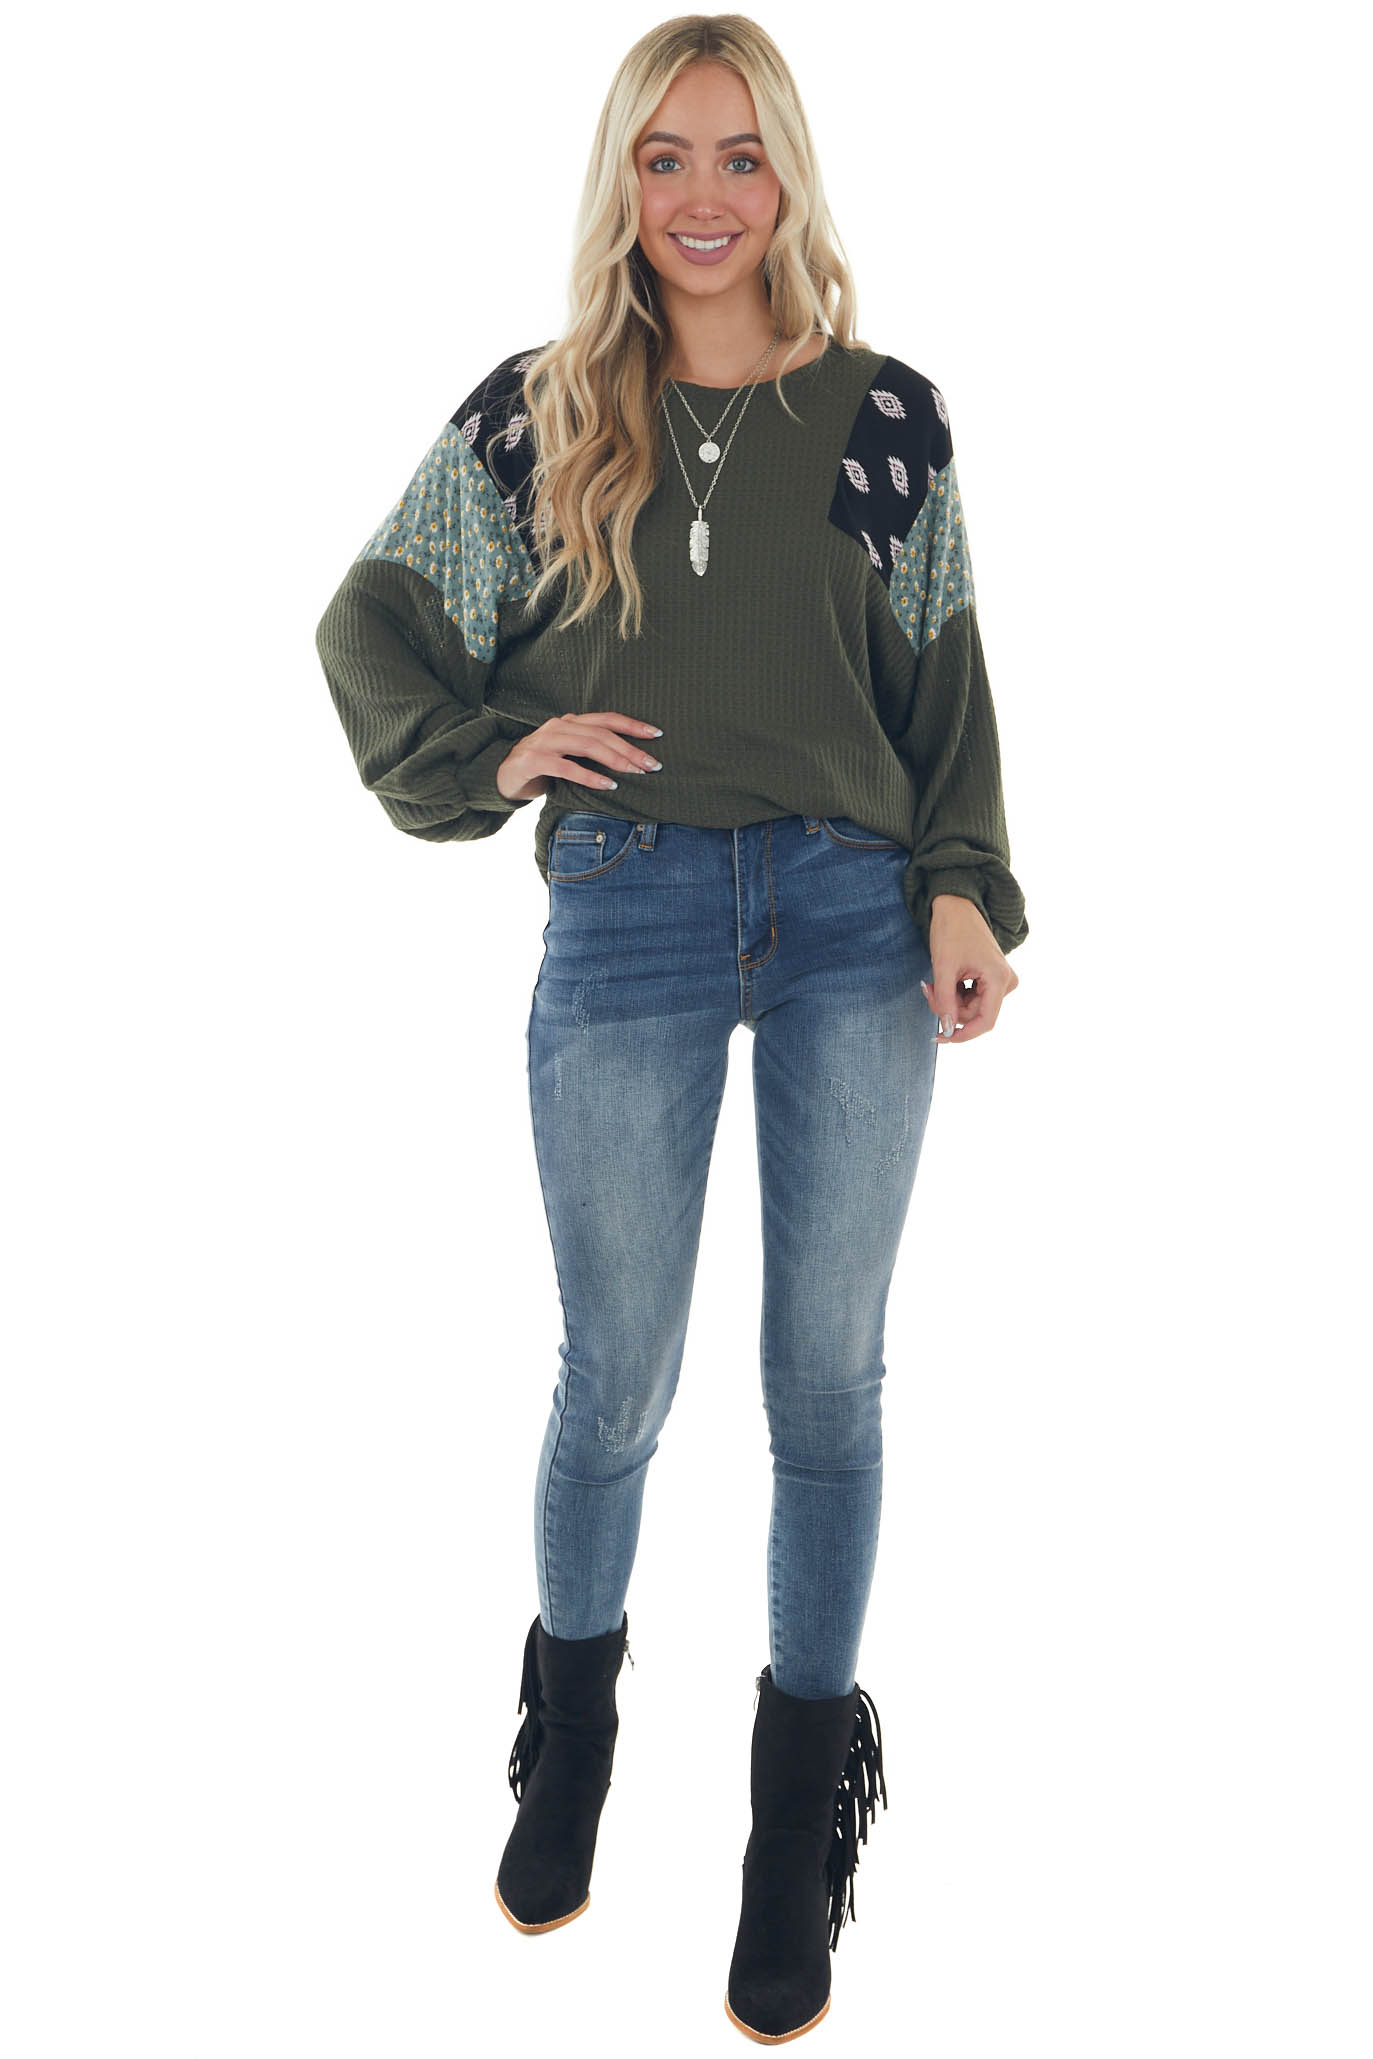 Olive Waffle Knit Top with Contrast Shoulders